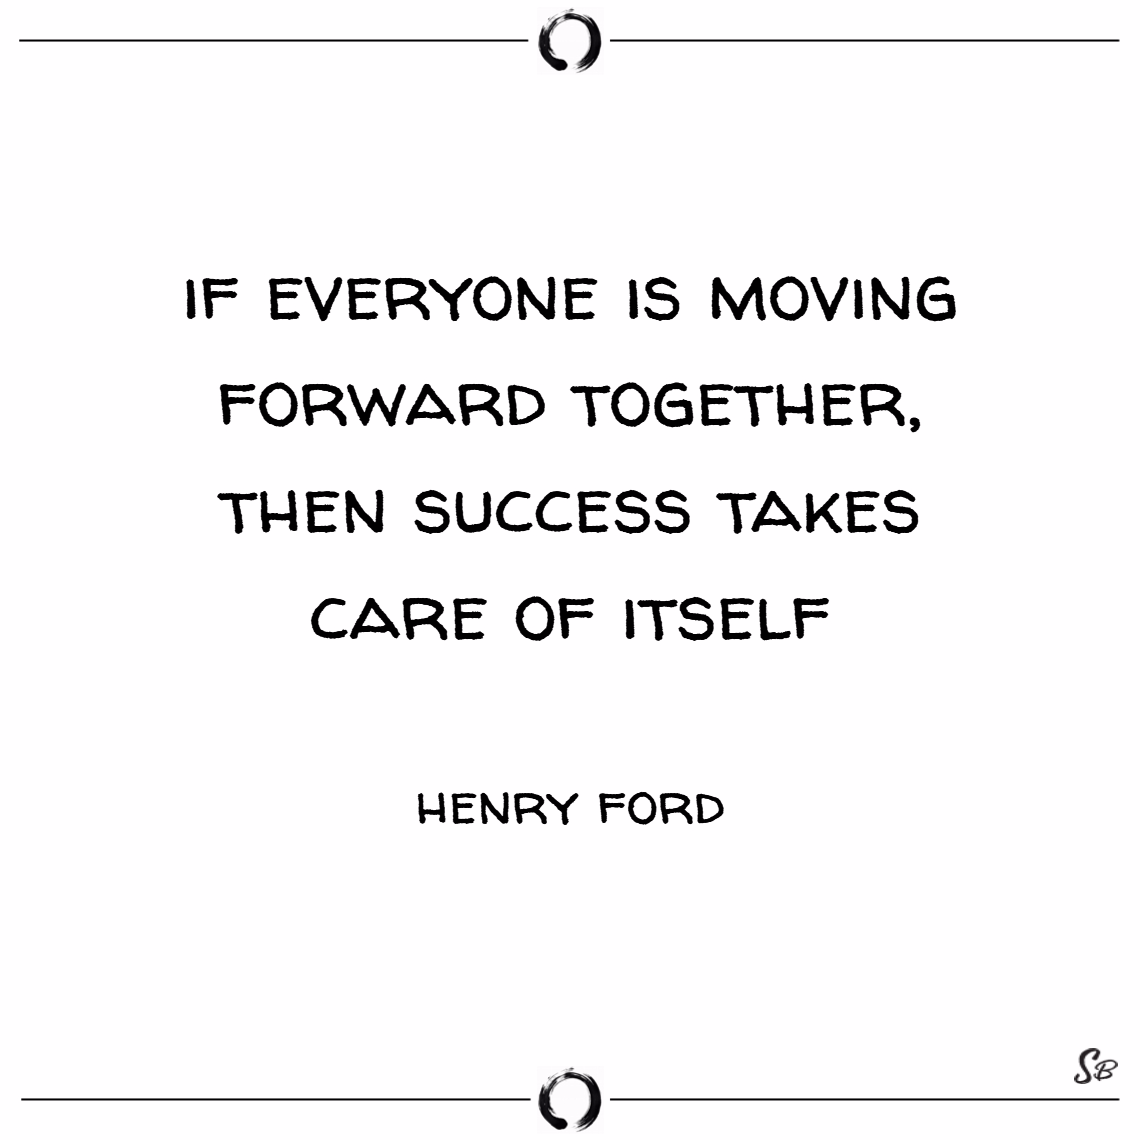 If everyone is moving forward together, then succe